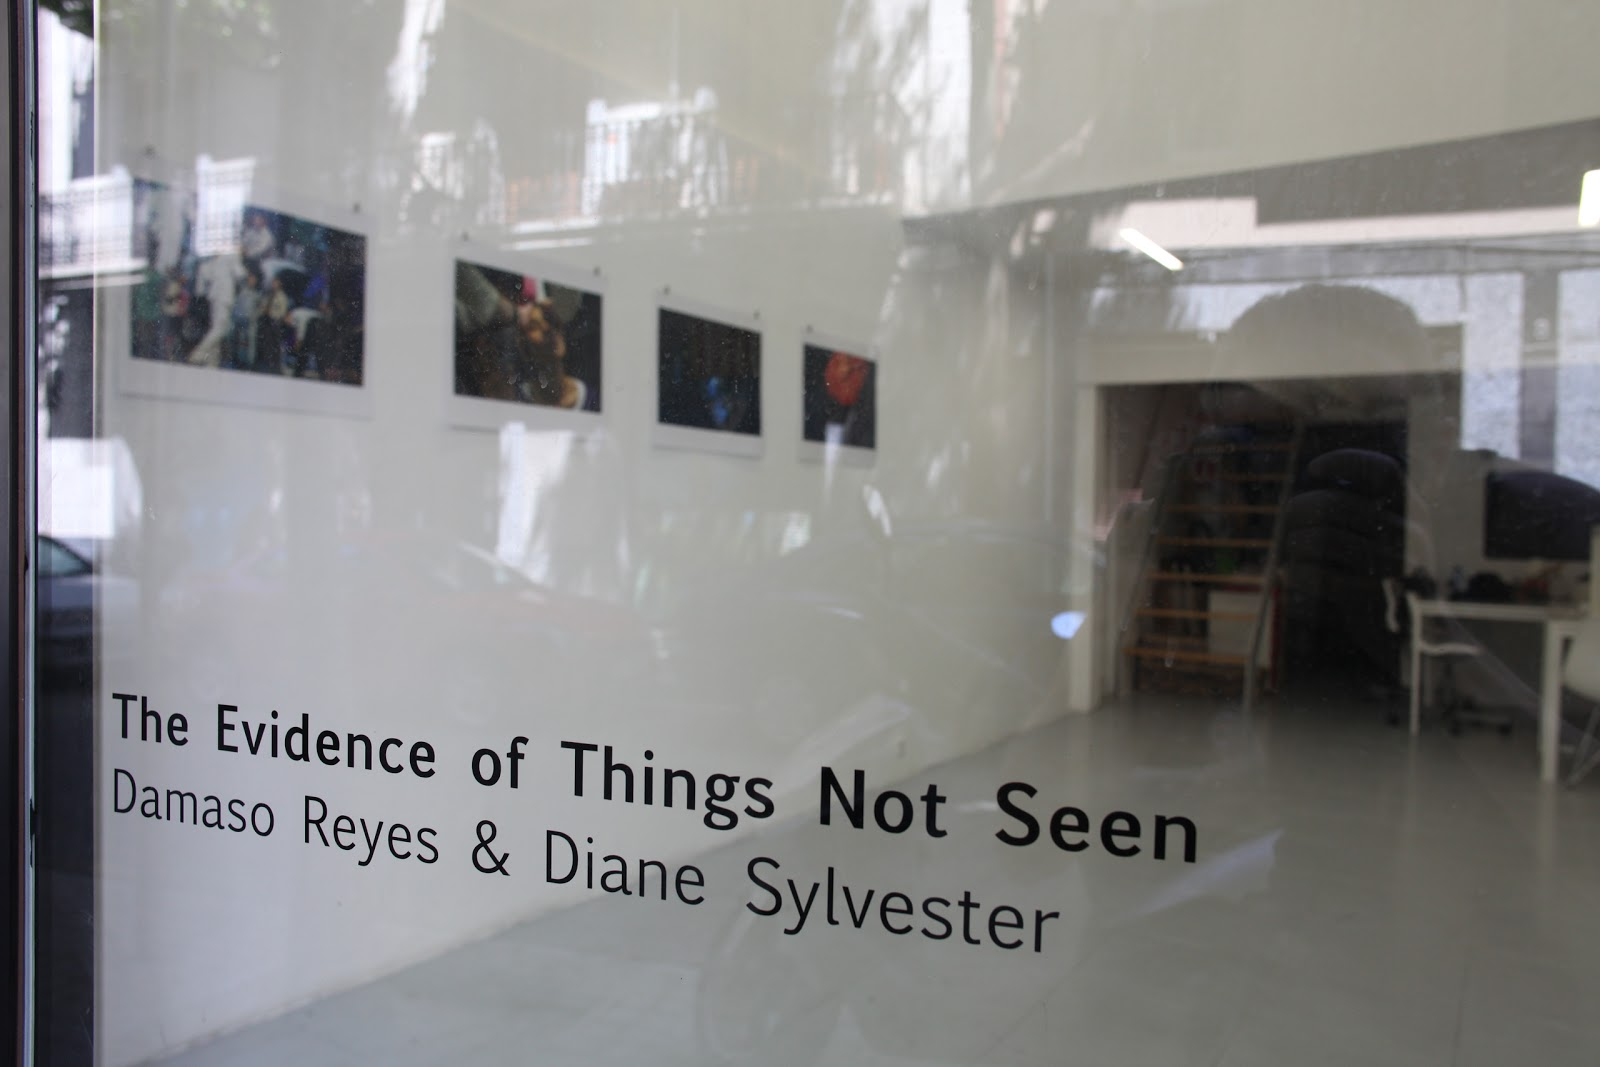 Damaso Reyes & Diane Sylvester. The Evidence of Things Not Seen.